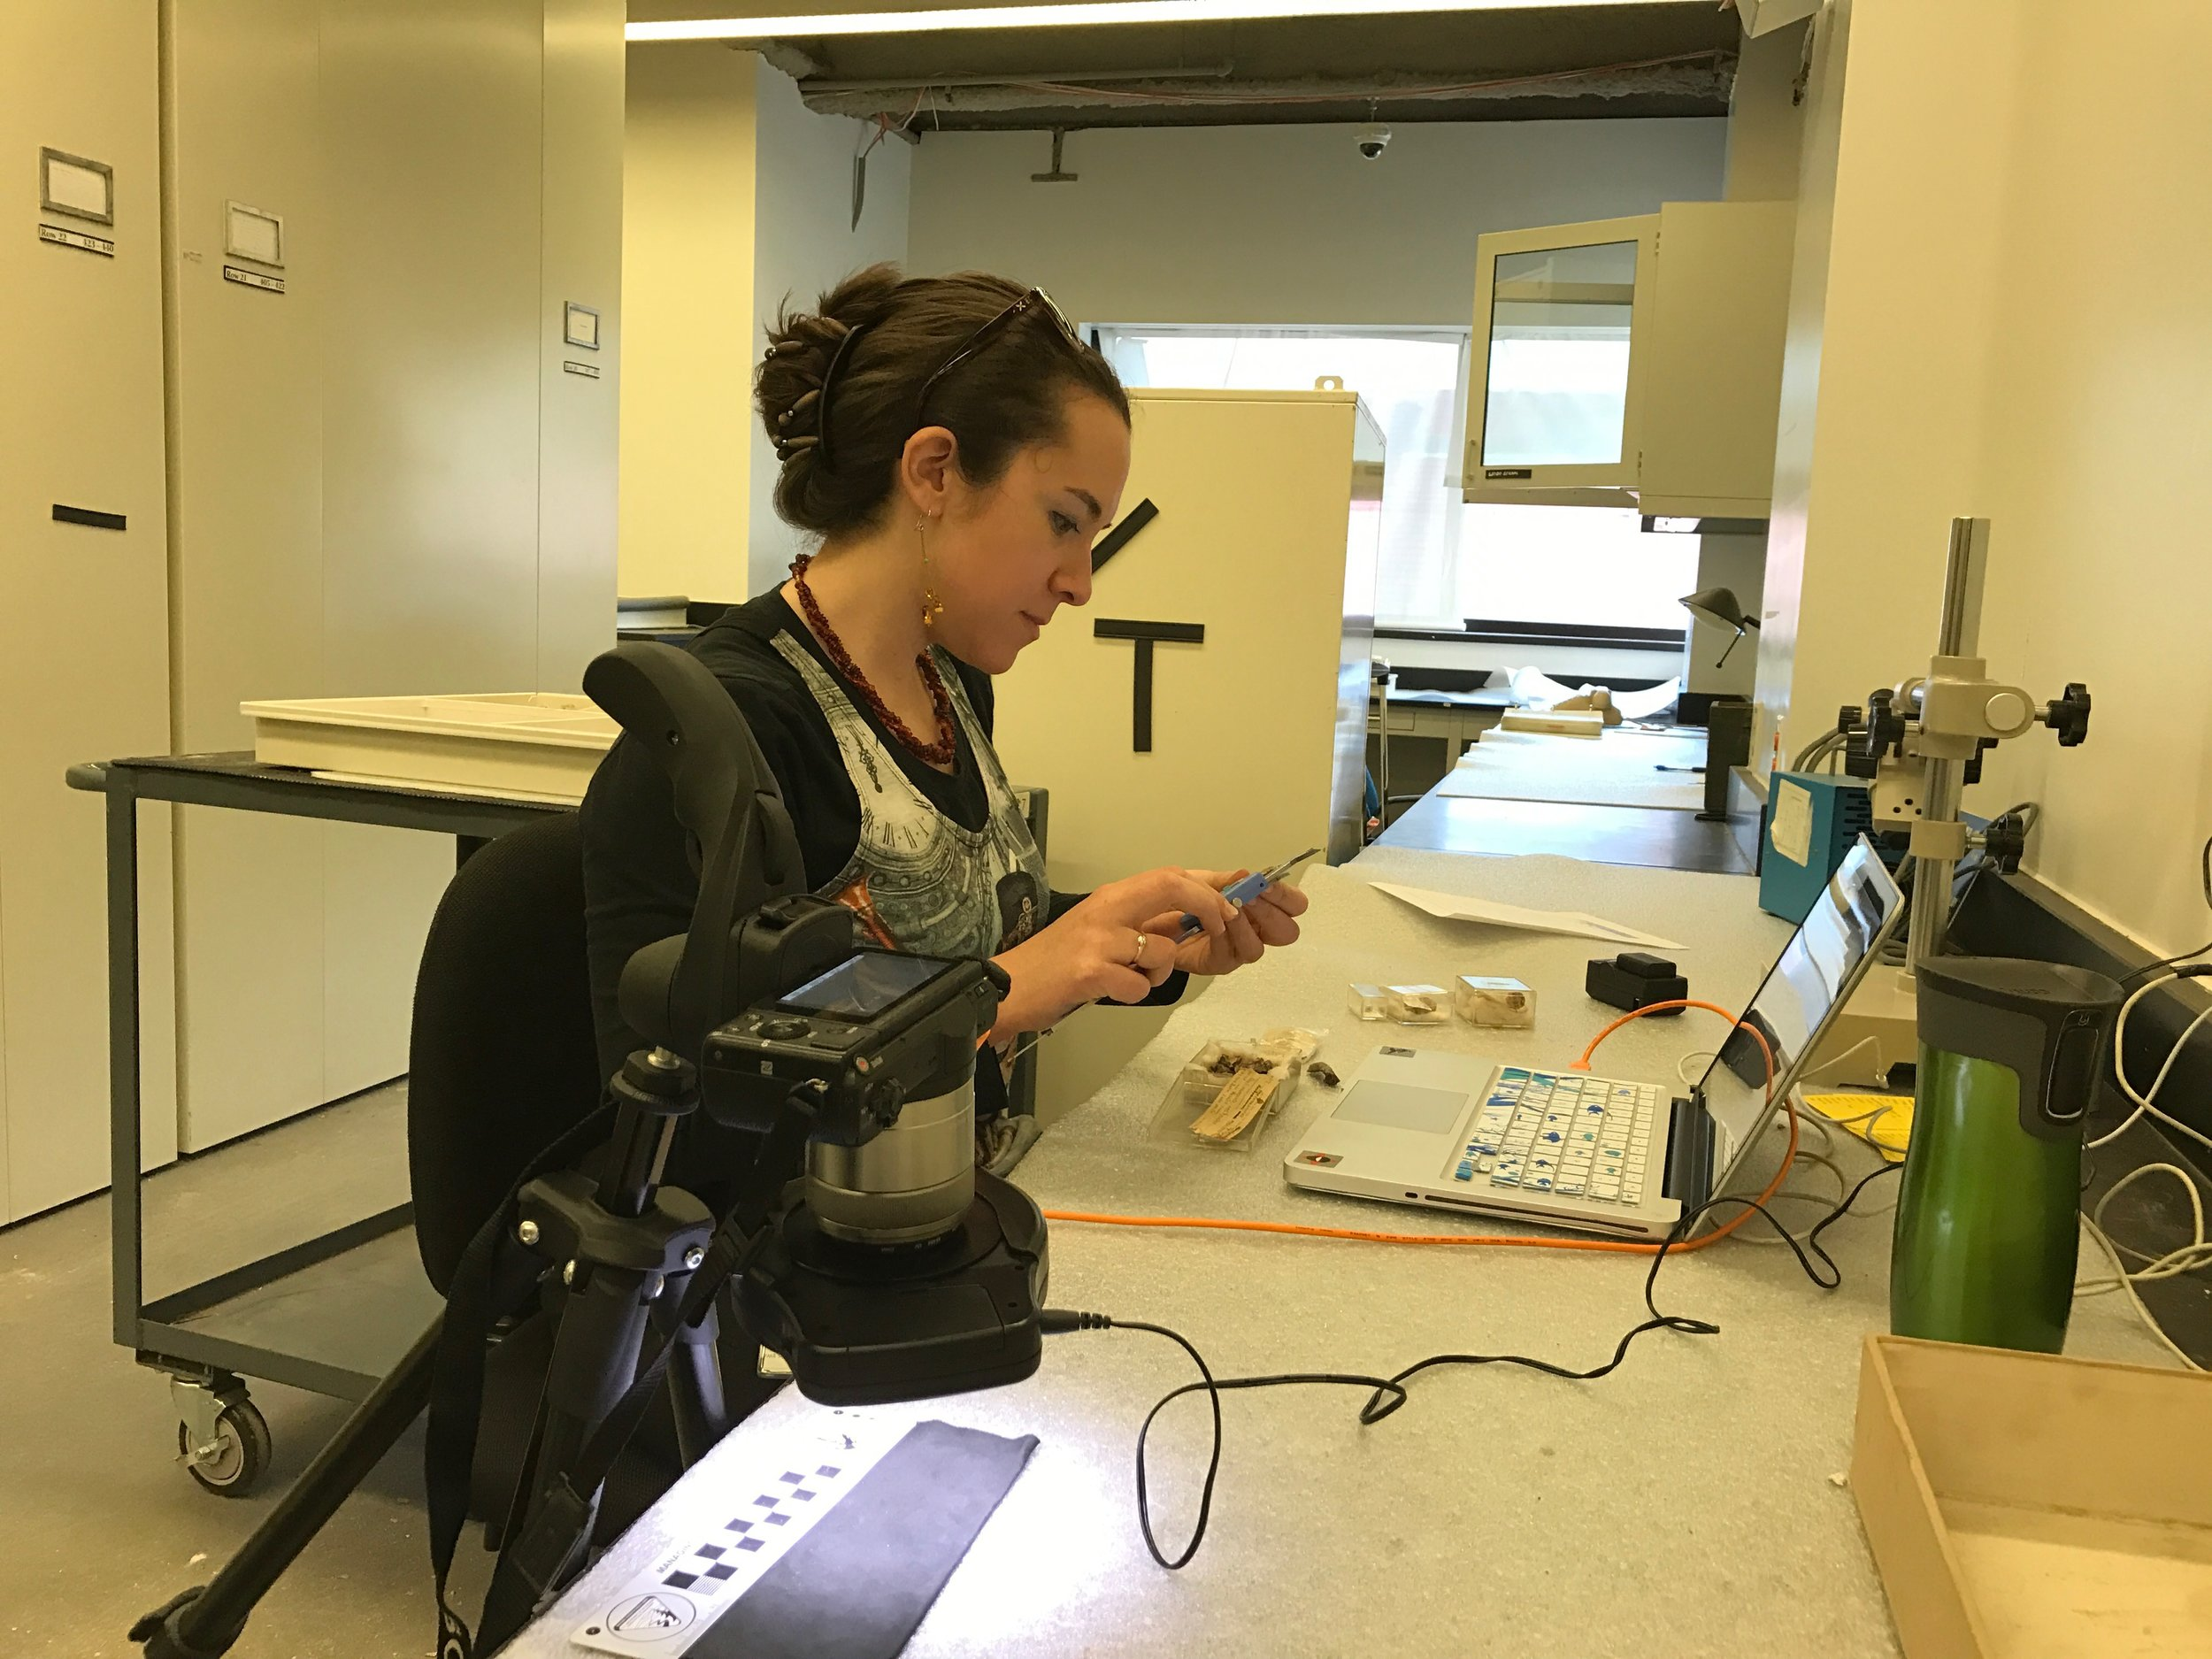 Measuring fossil lizards in the vertebrate paleontology collections at the American Museum of Natural History, New York, NY.